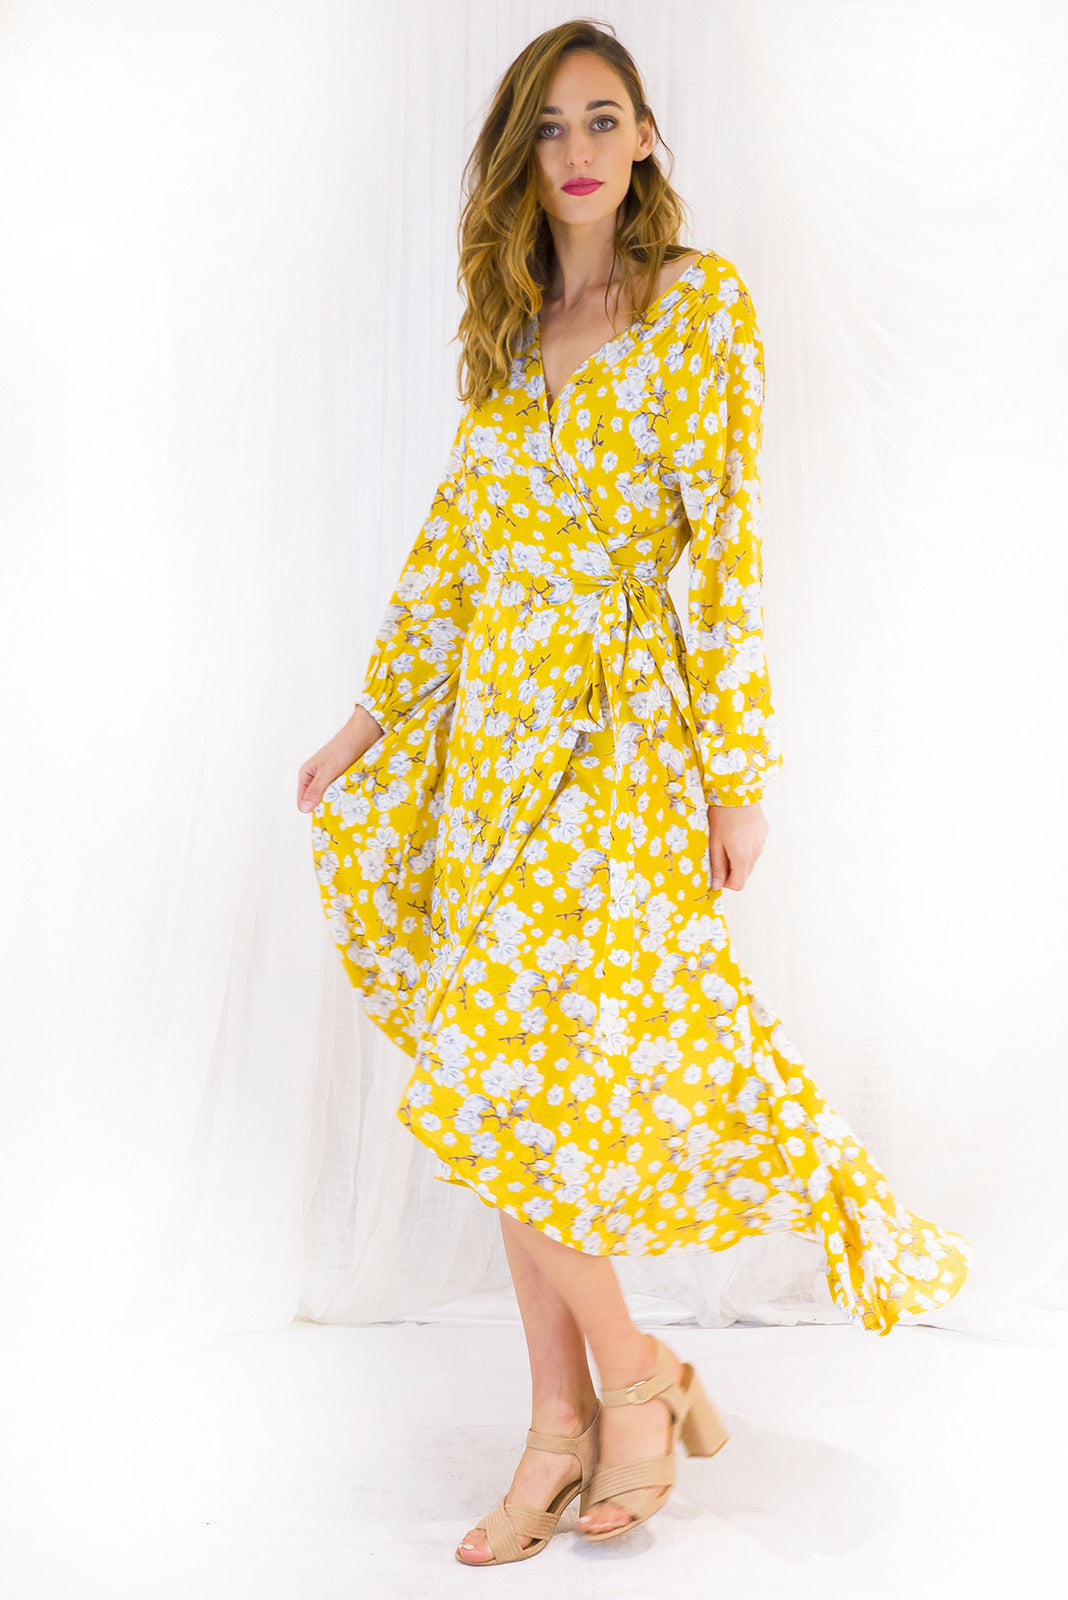 Sunshine yellow long sleeved maxi wrap dress, cheesecloth wrap around maxi dress